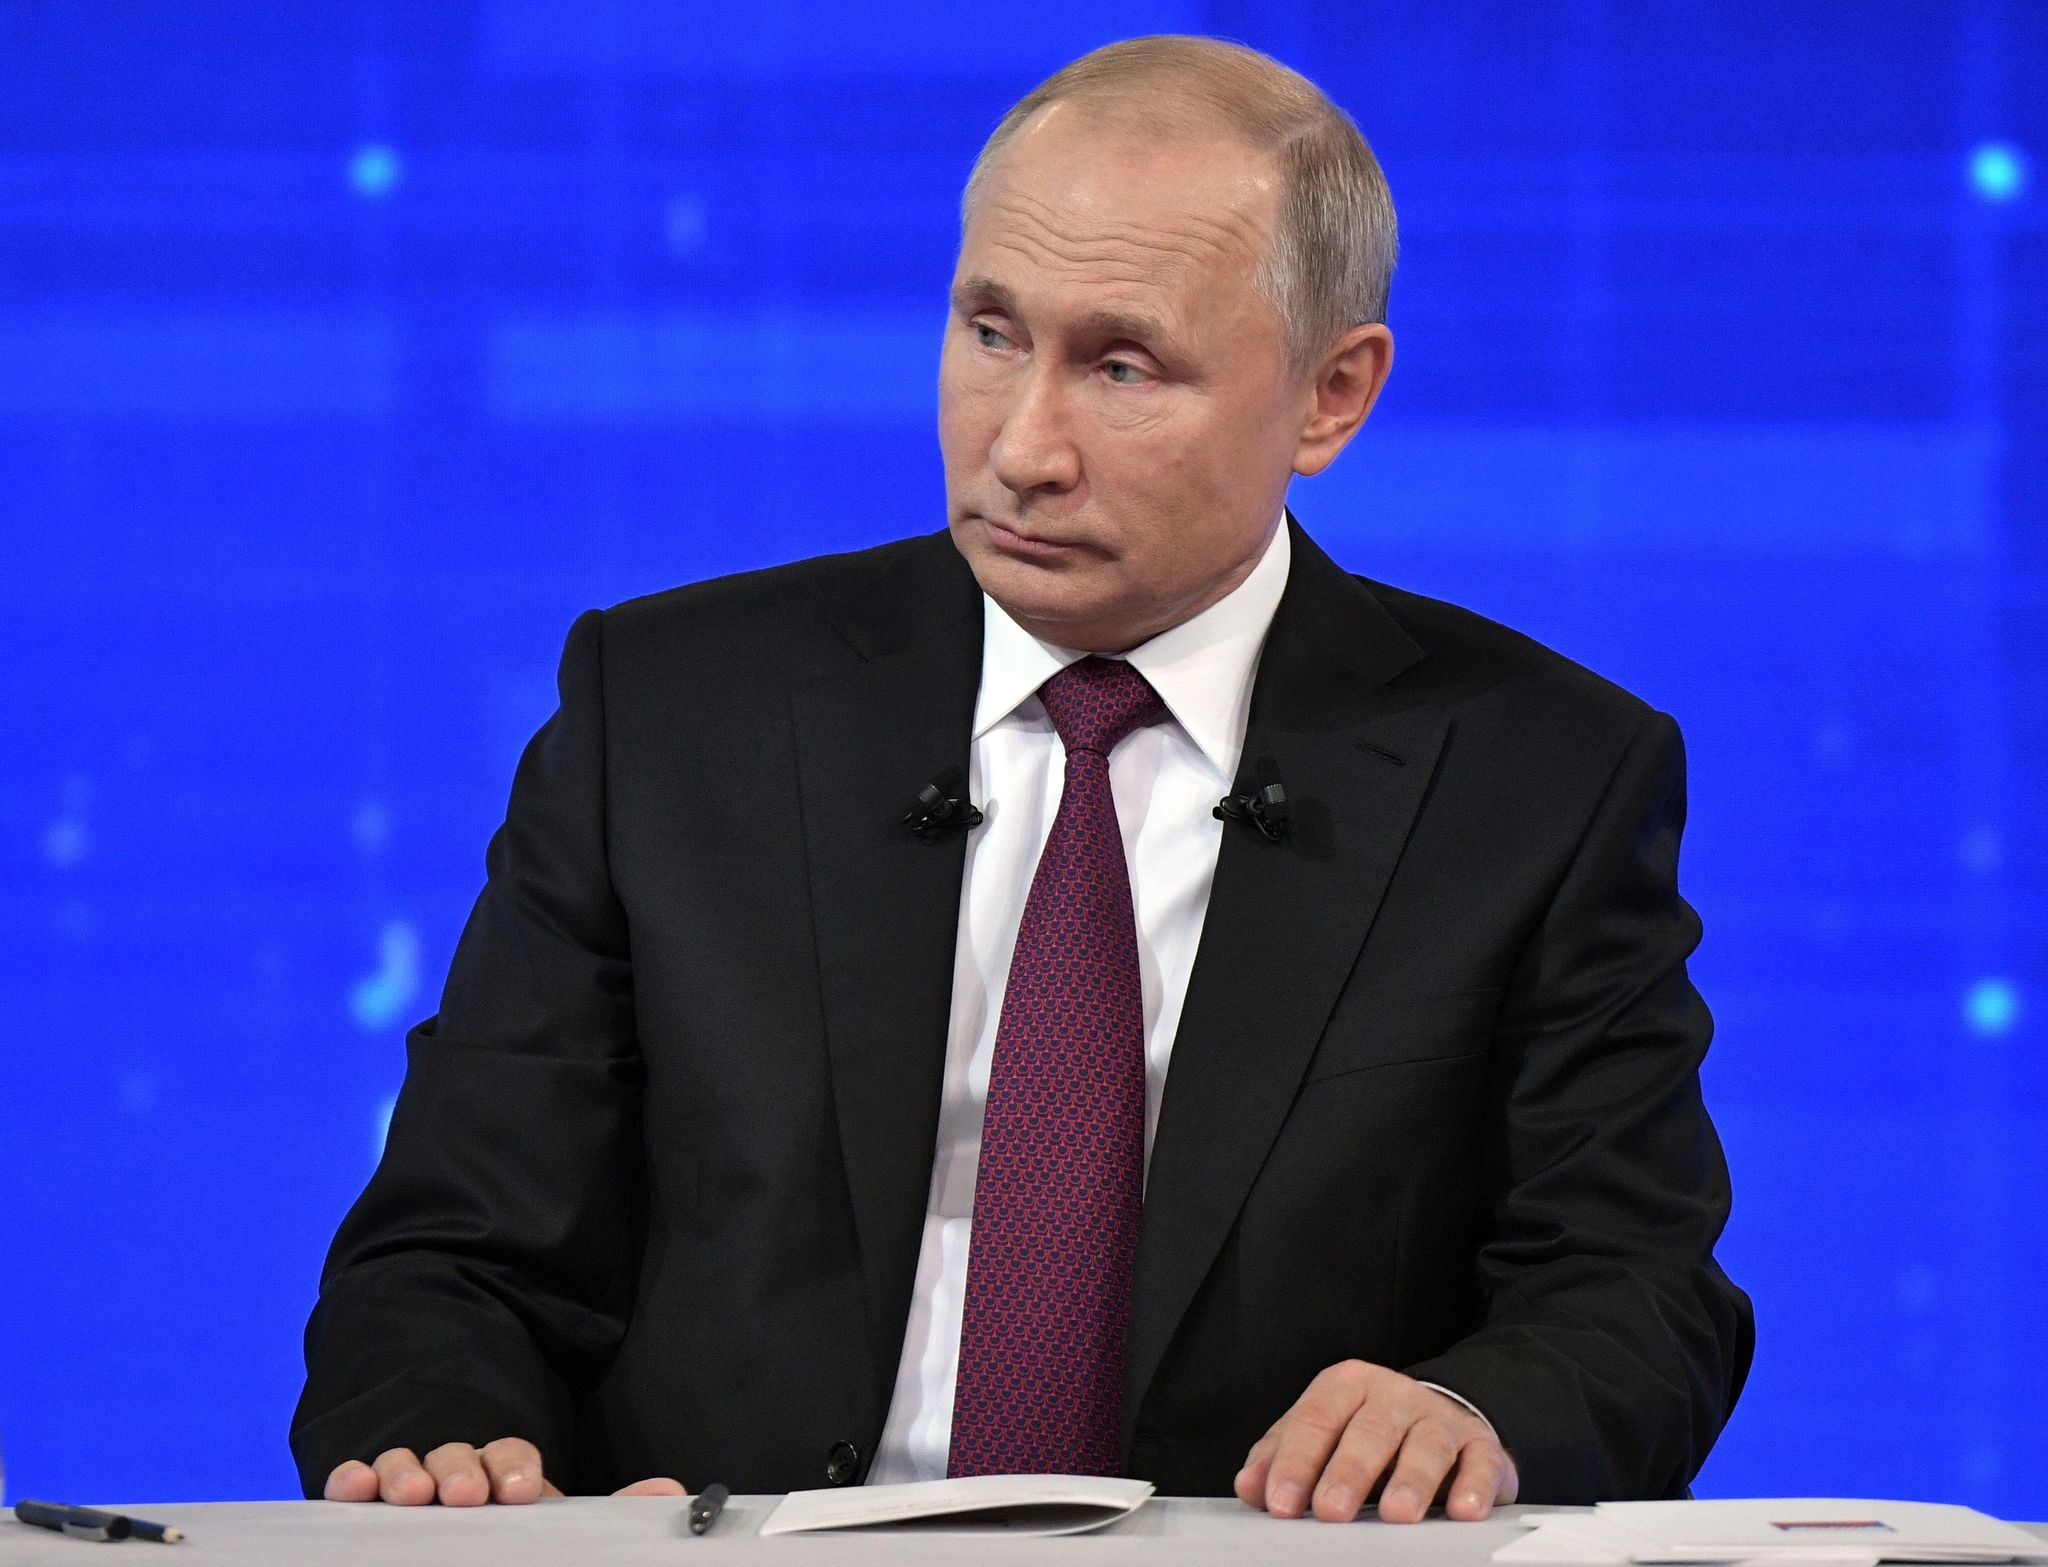 Putin questions hacking report after Trump cries 'fake news'